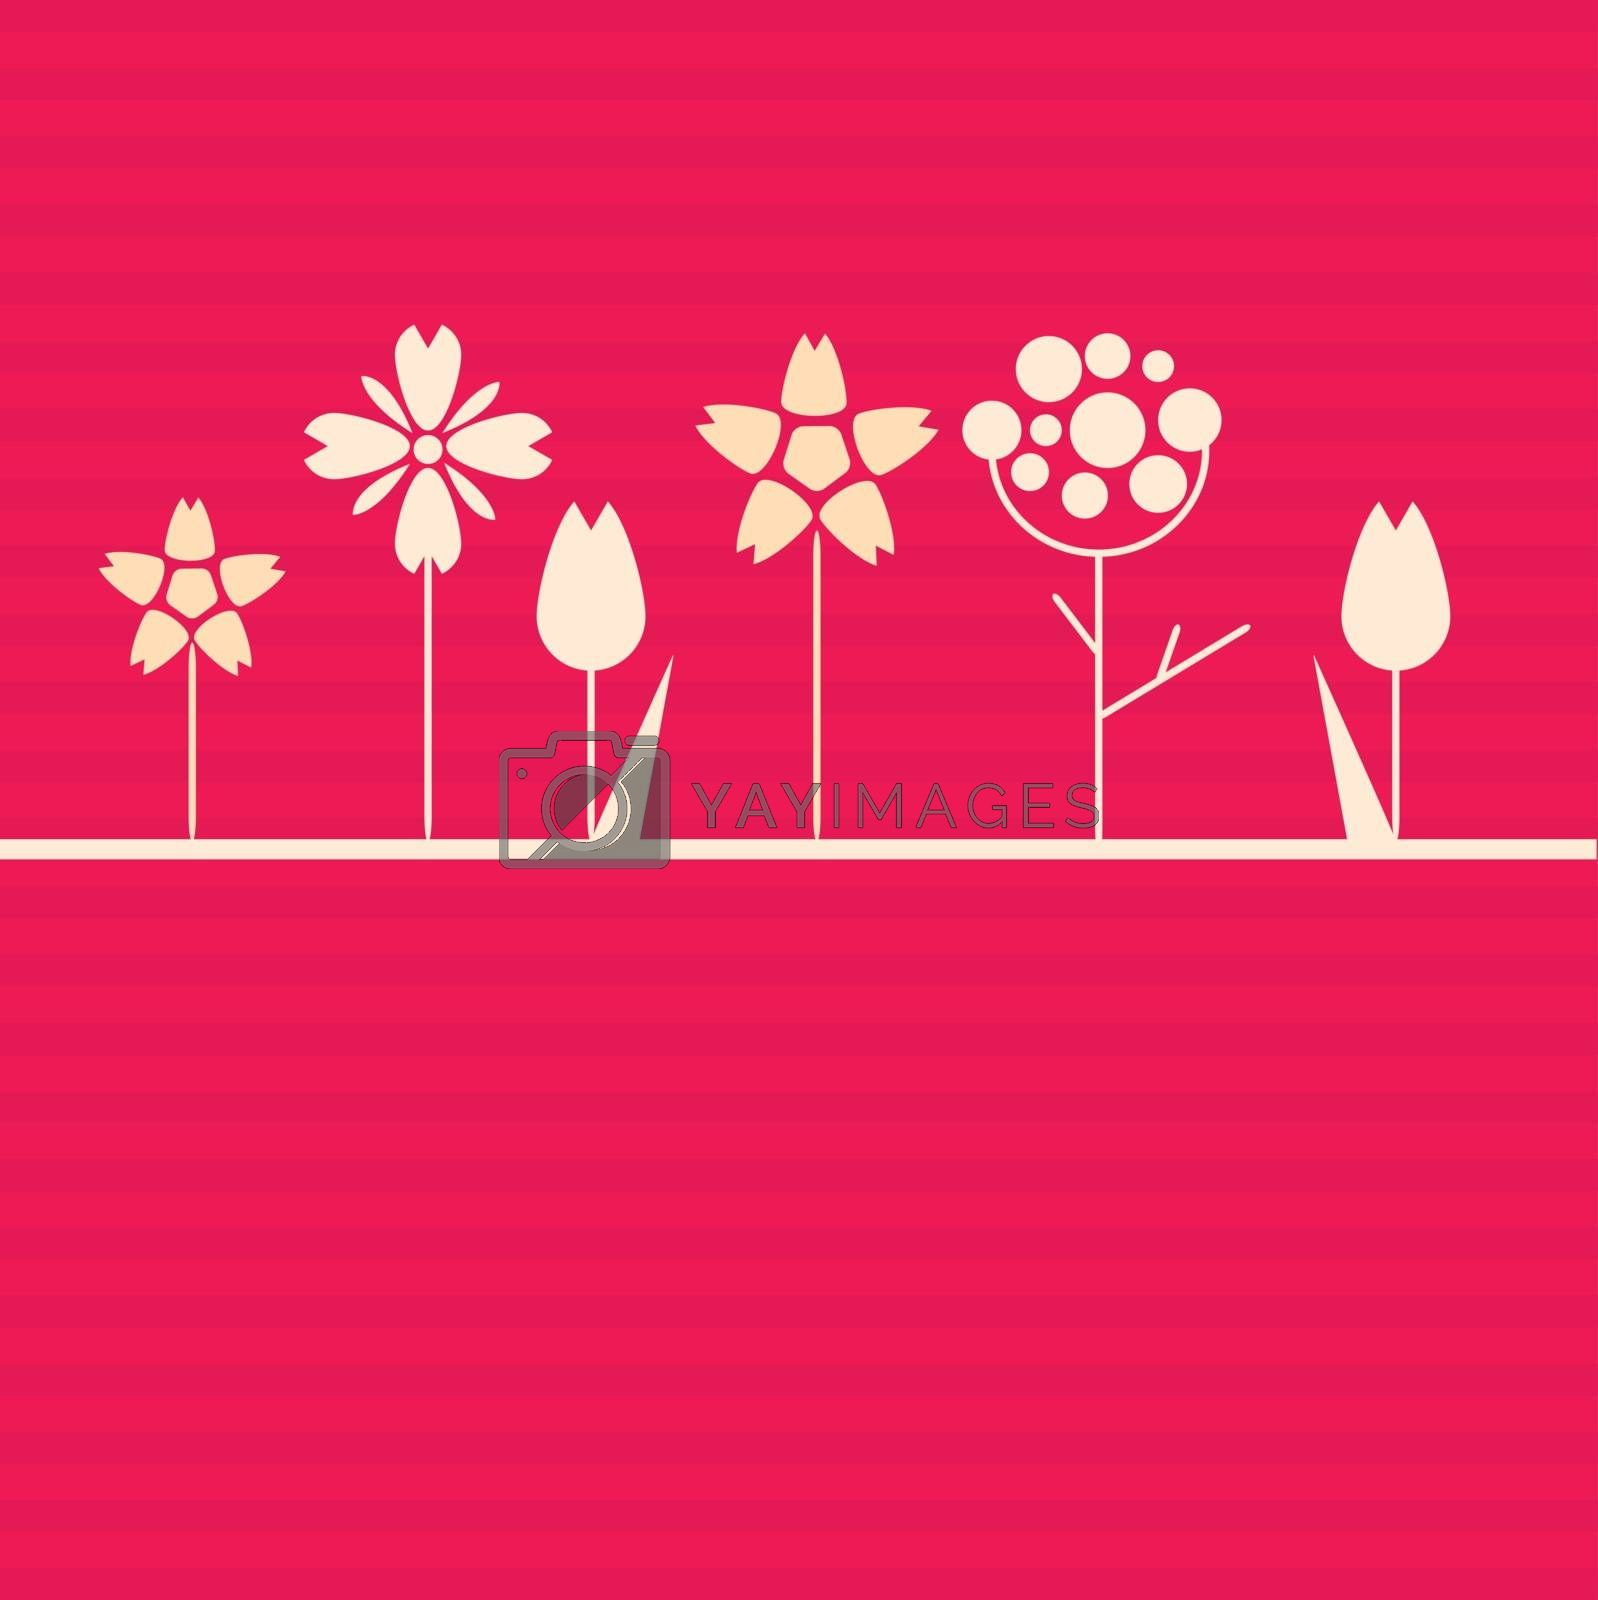 White geometric flowers on pink bright background